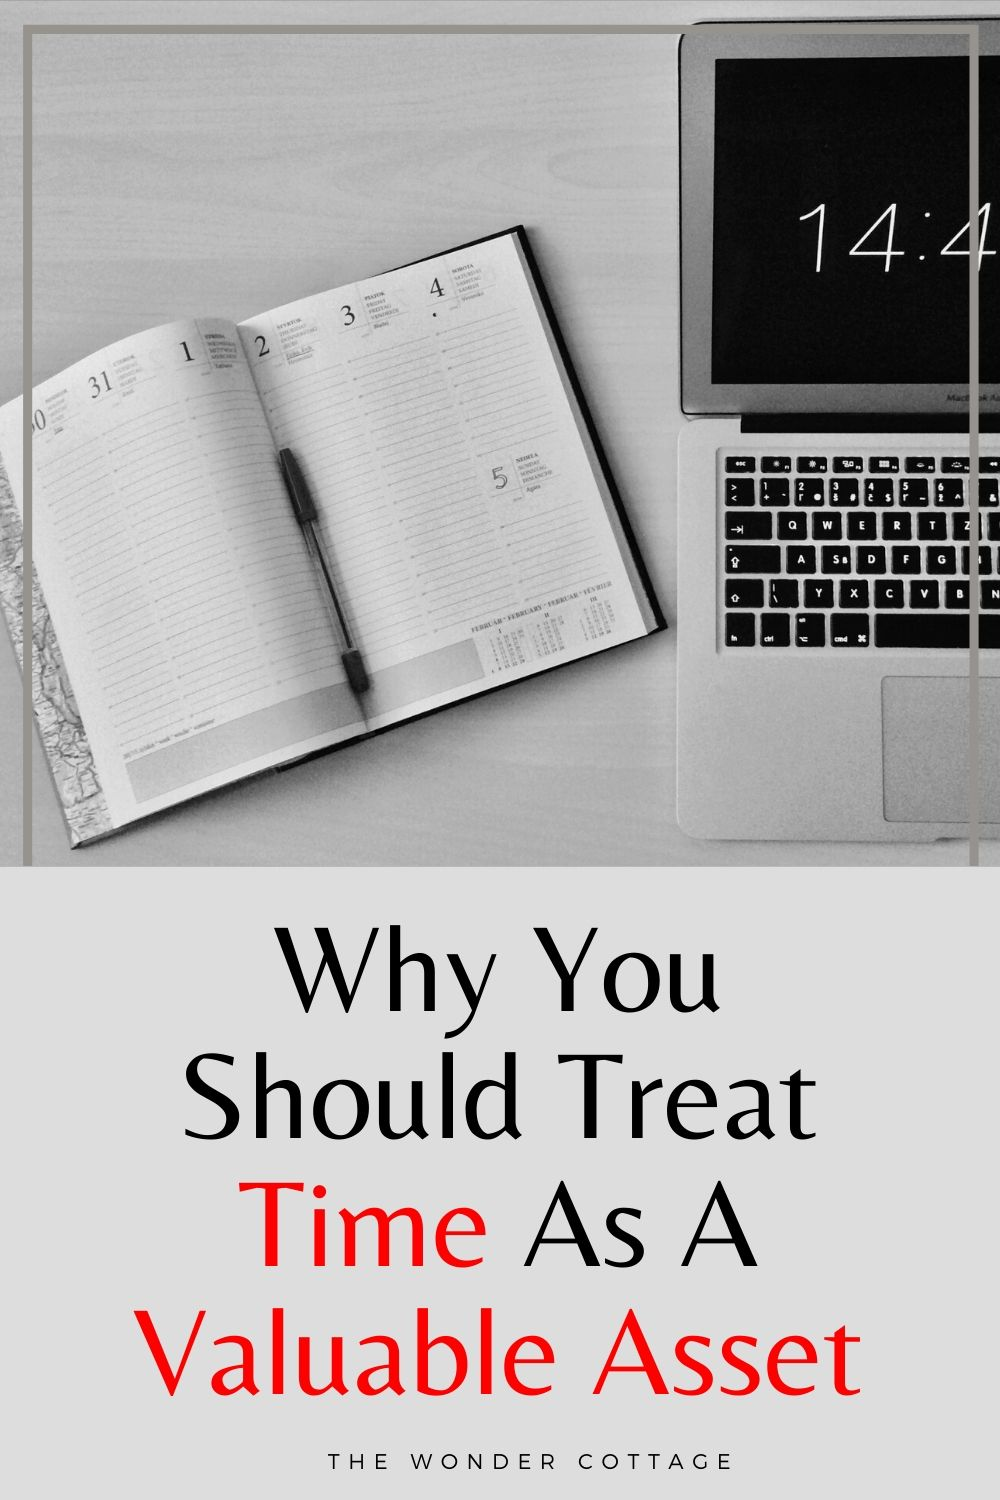 Why you should treat time as a valuable asset